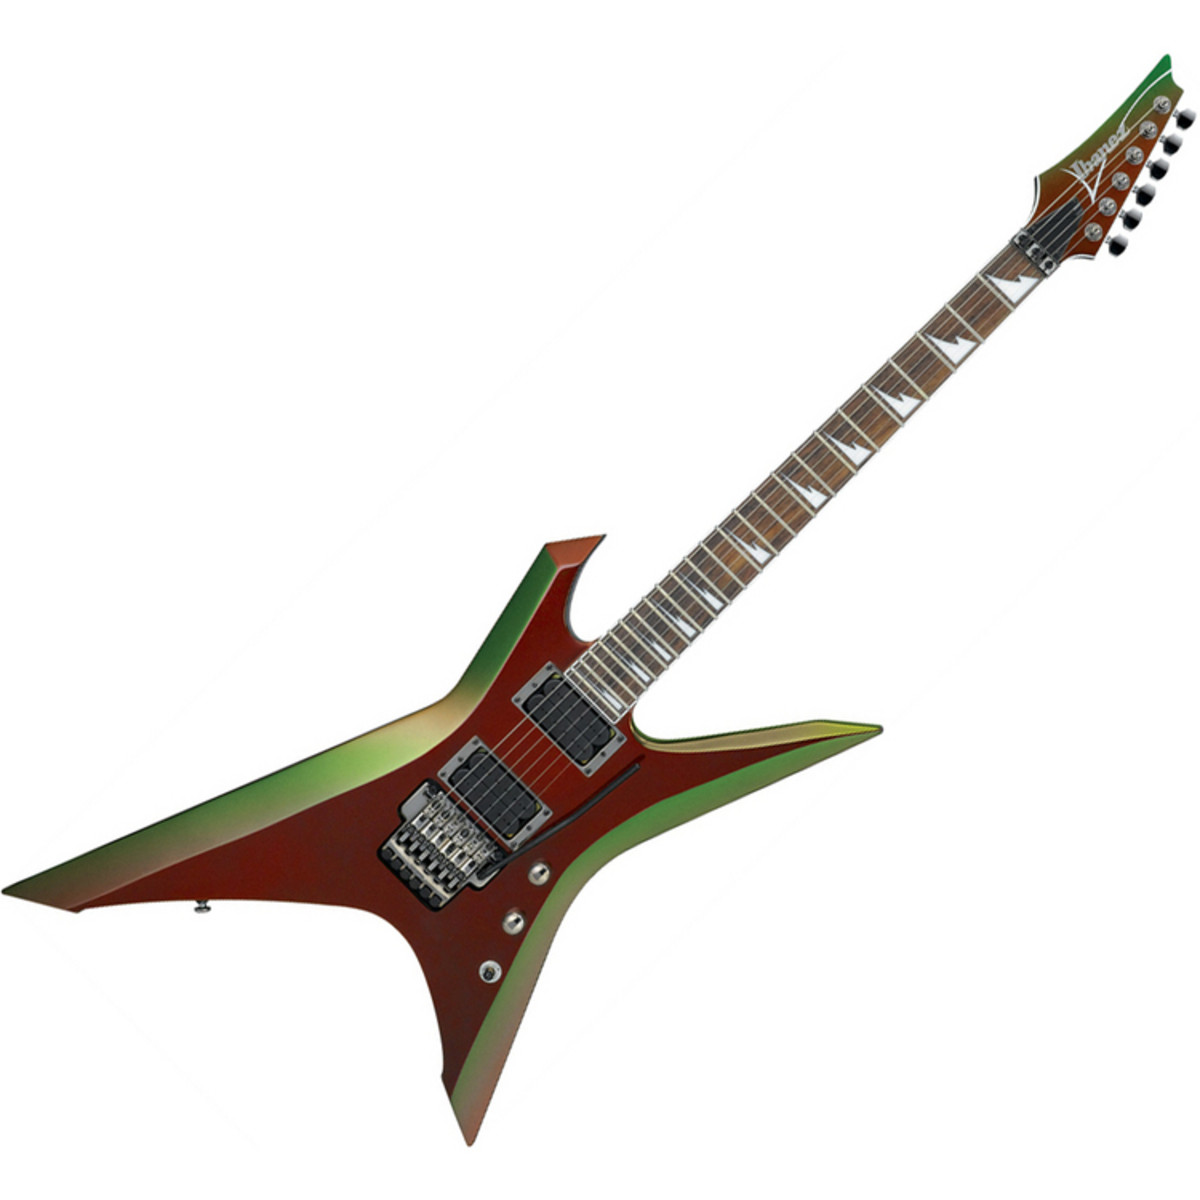 DISC Ibanez Xiphos XPT700 Electric Guitar, Red Chameleon ...